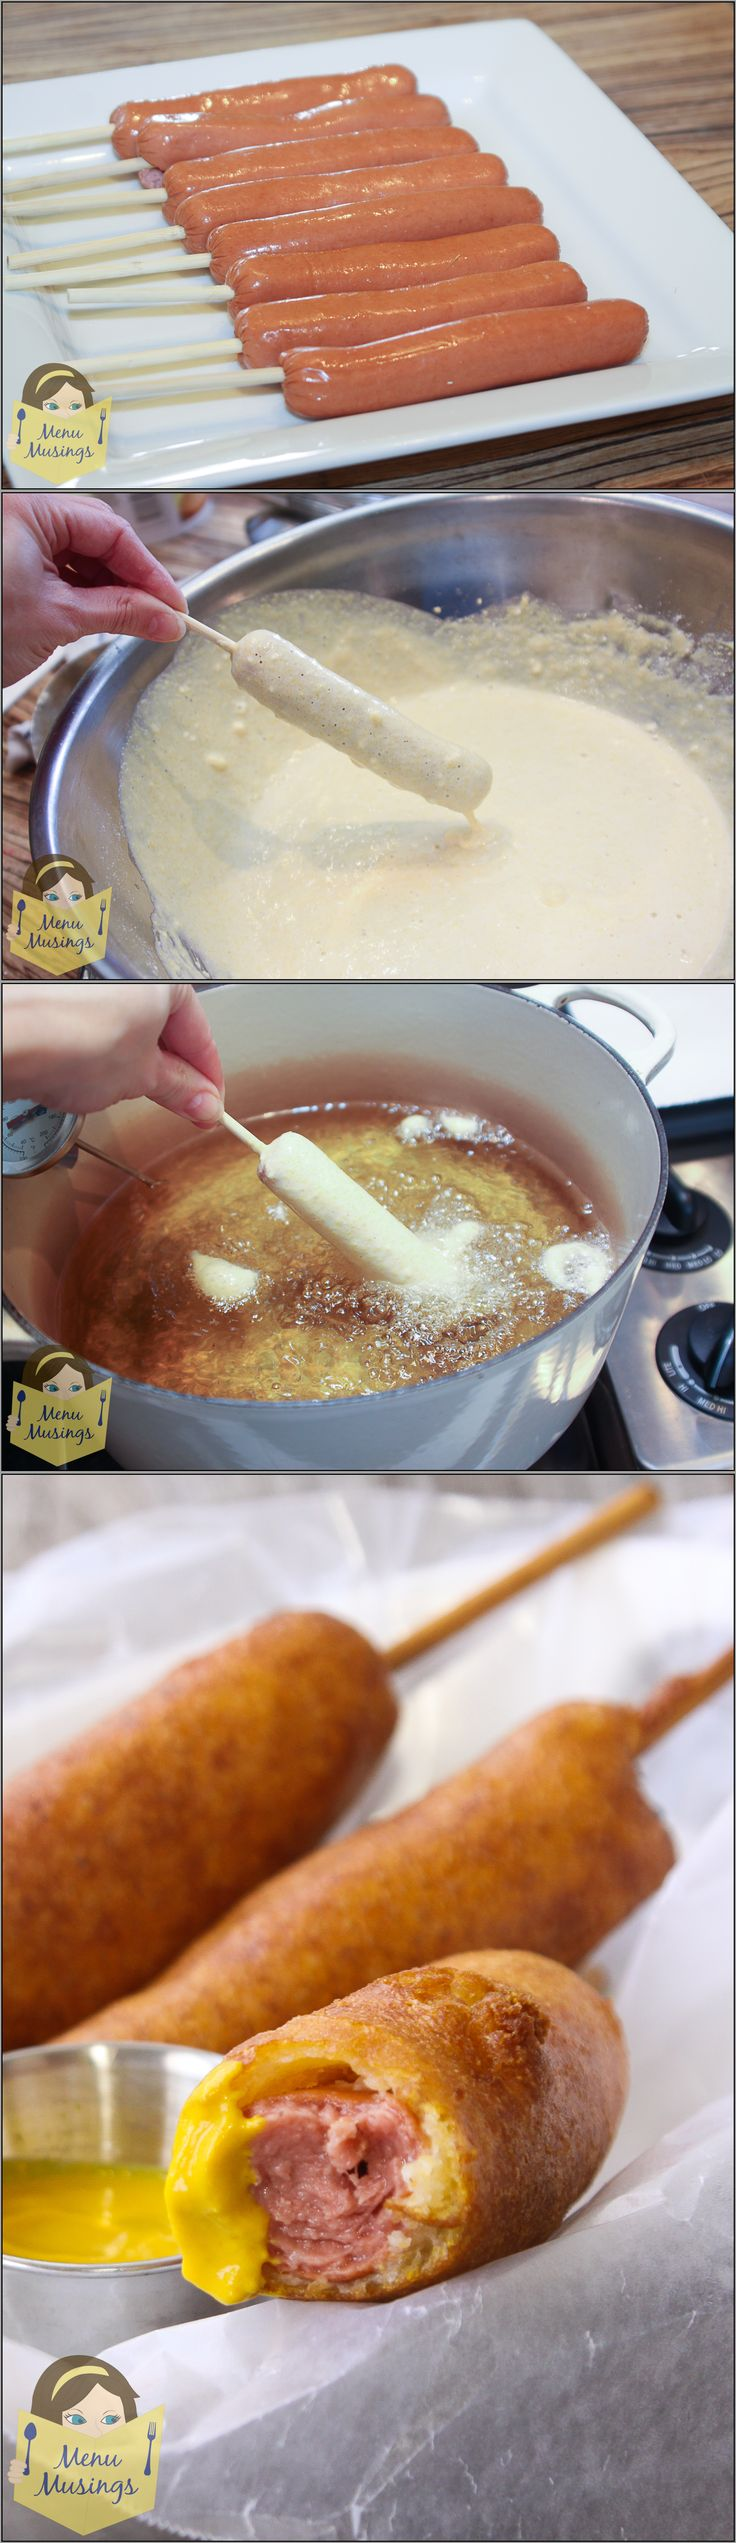 Homemade Corn Dogs – Step-by-step photo tutorial